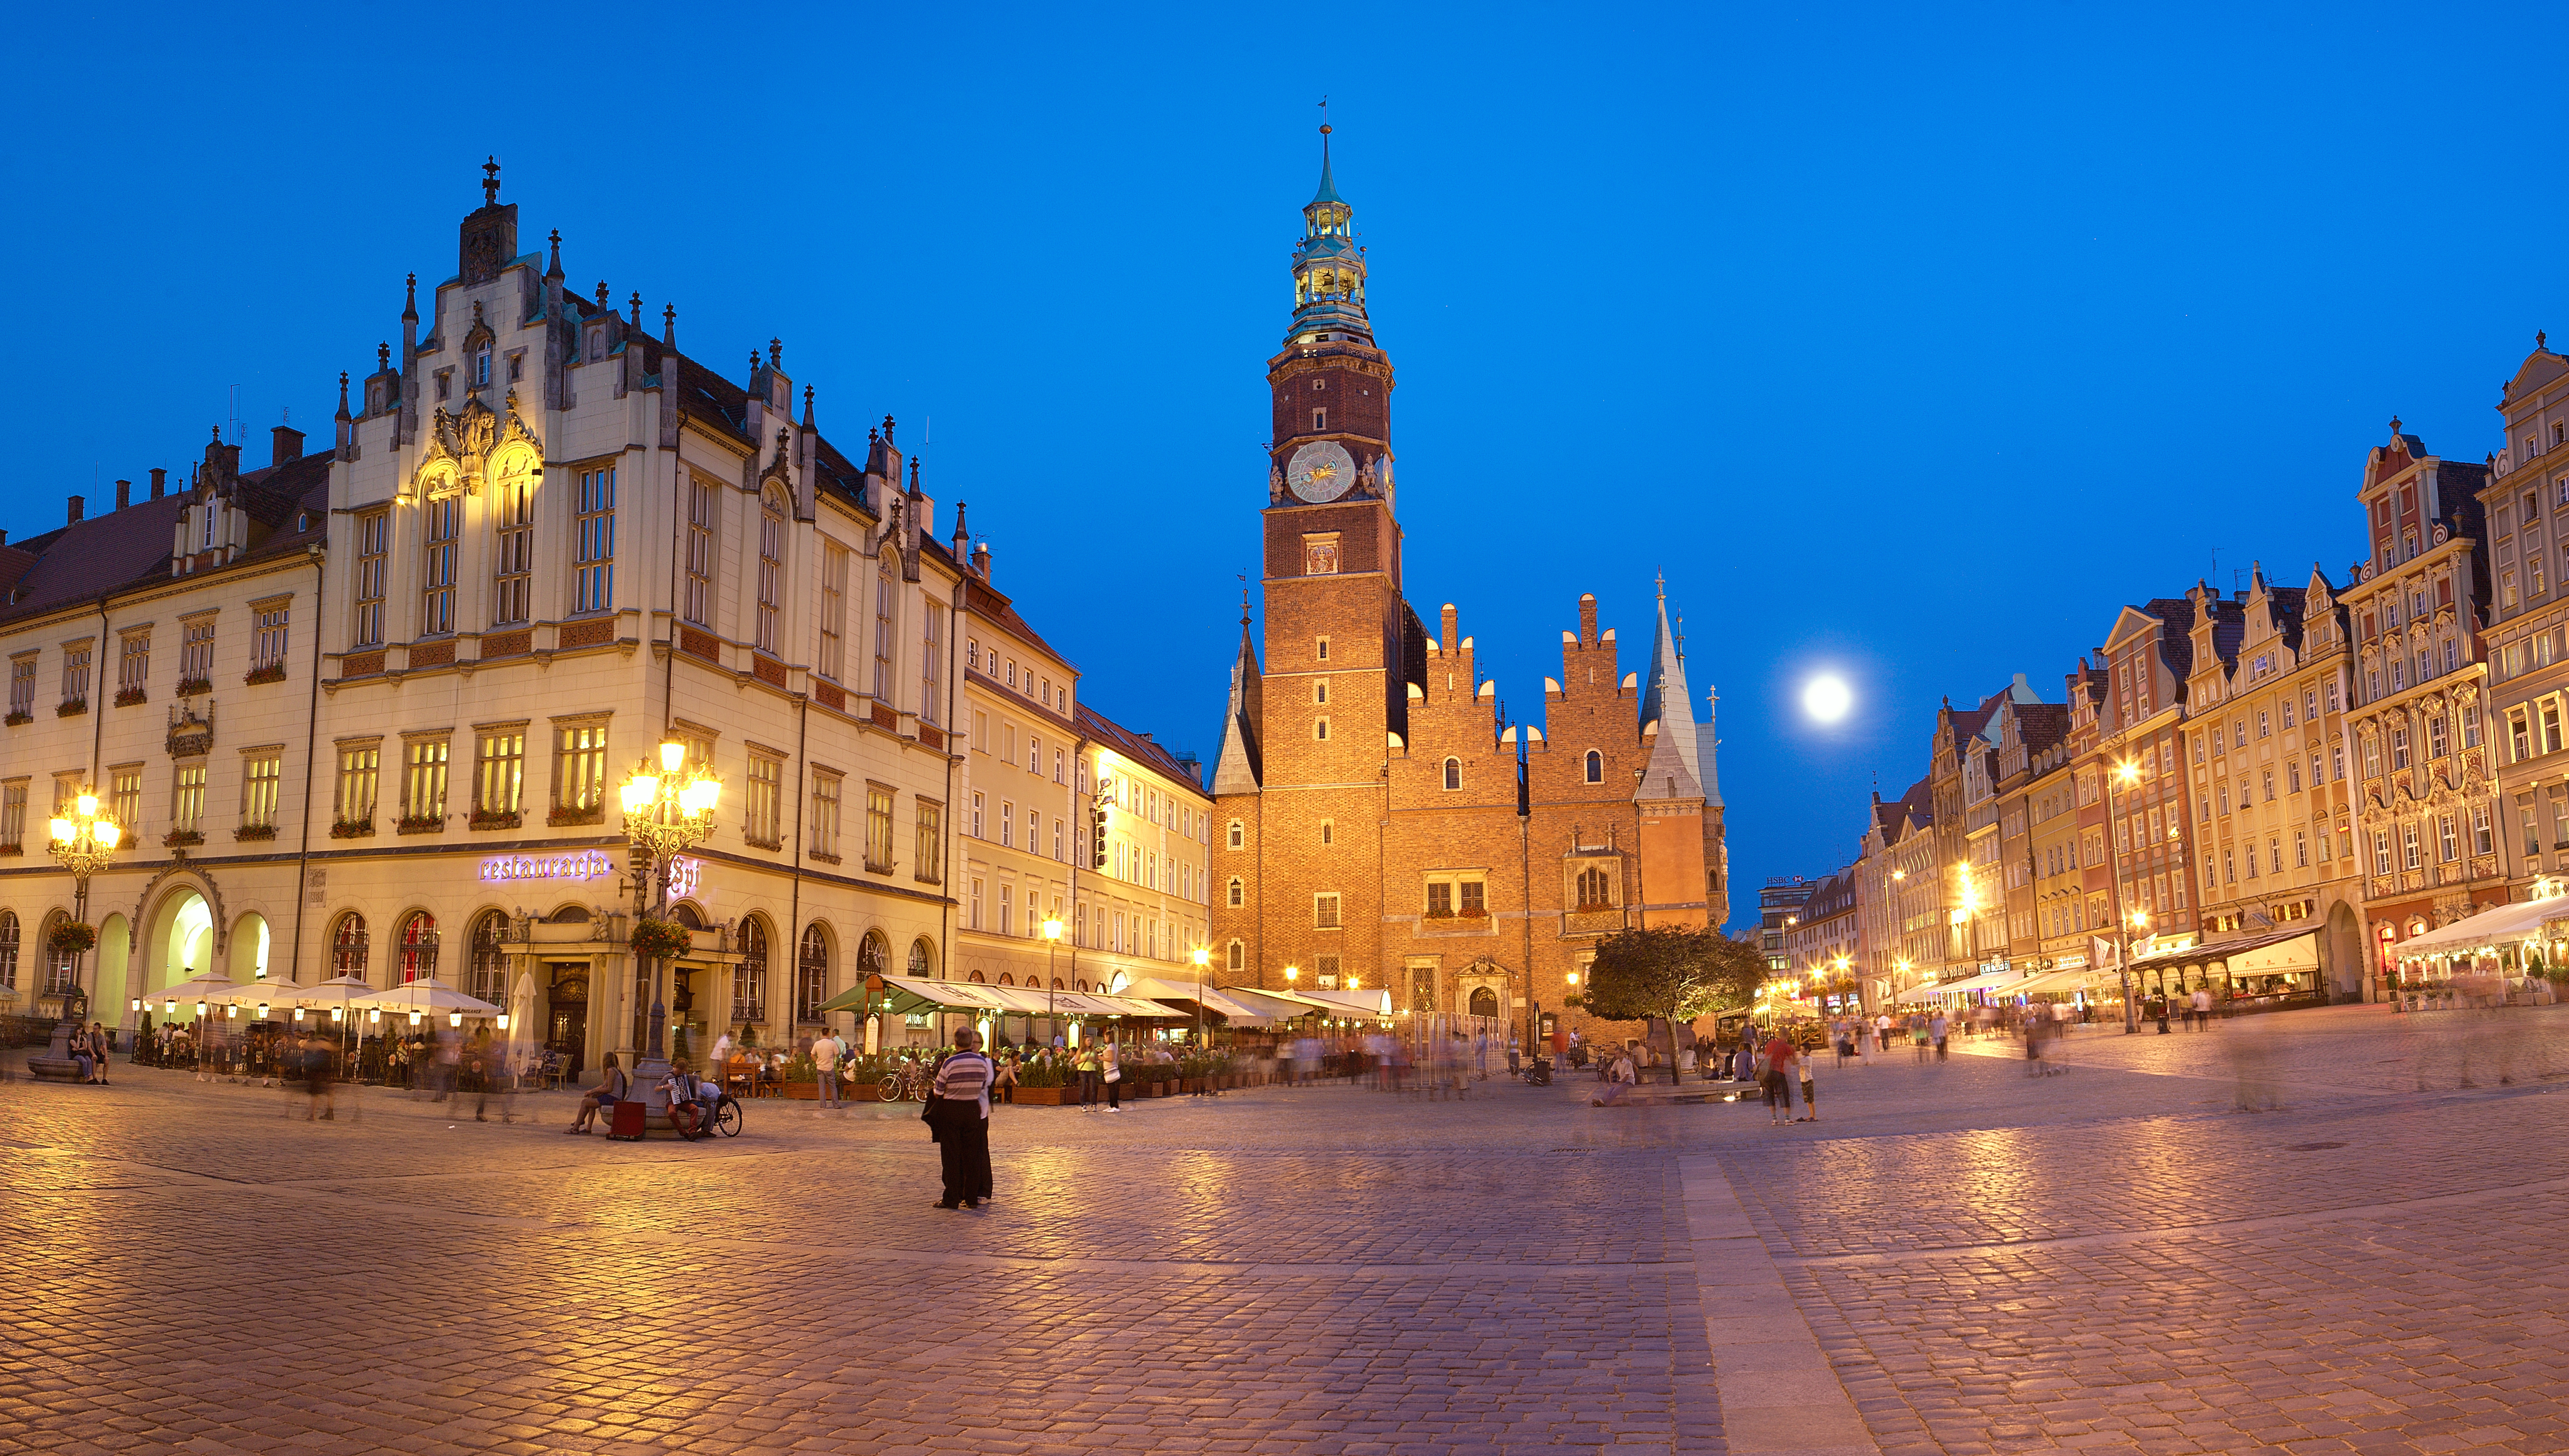 The market square at night time in Wroclaw, Poland.